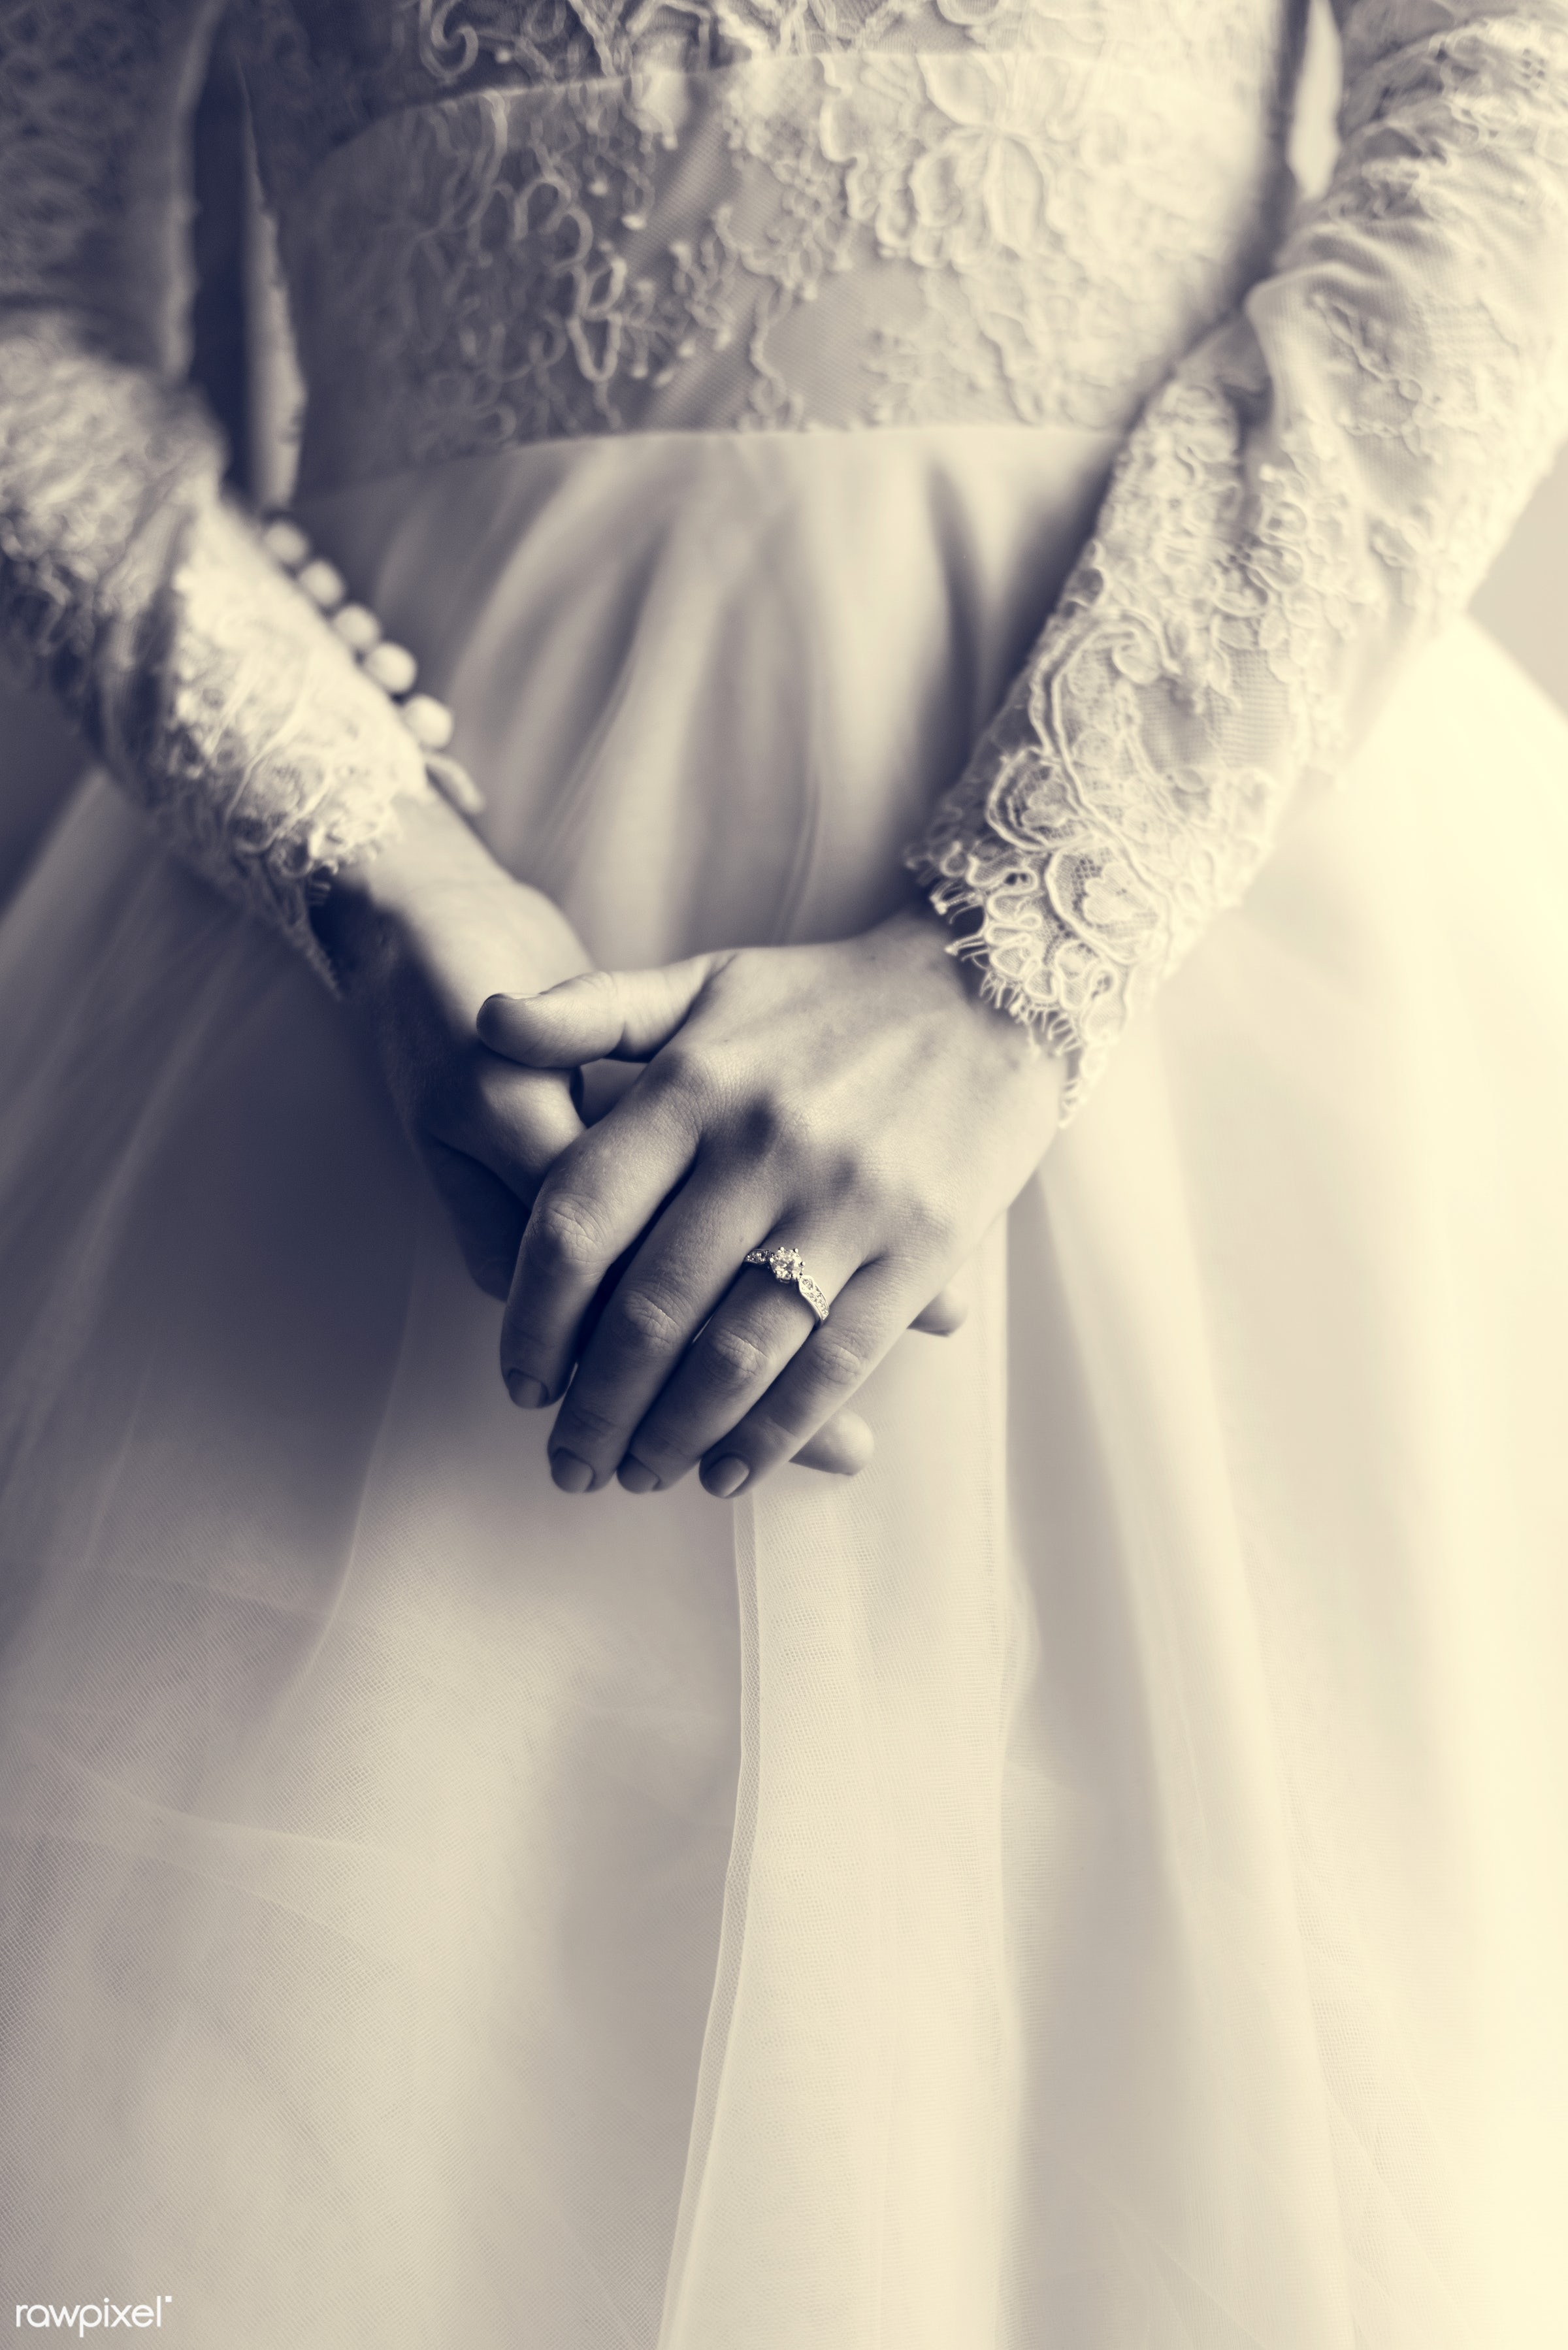 person, show, people, caucasian, glamour, love, woman, gown, cheerful, marry, ring, preparation, white, happiness, prepare,...